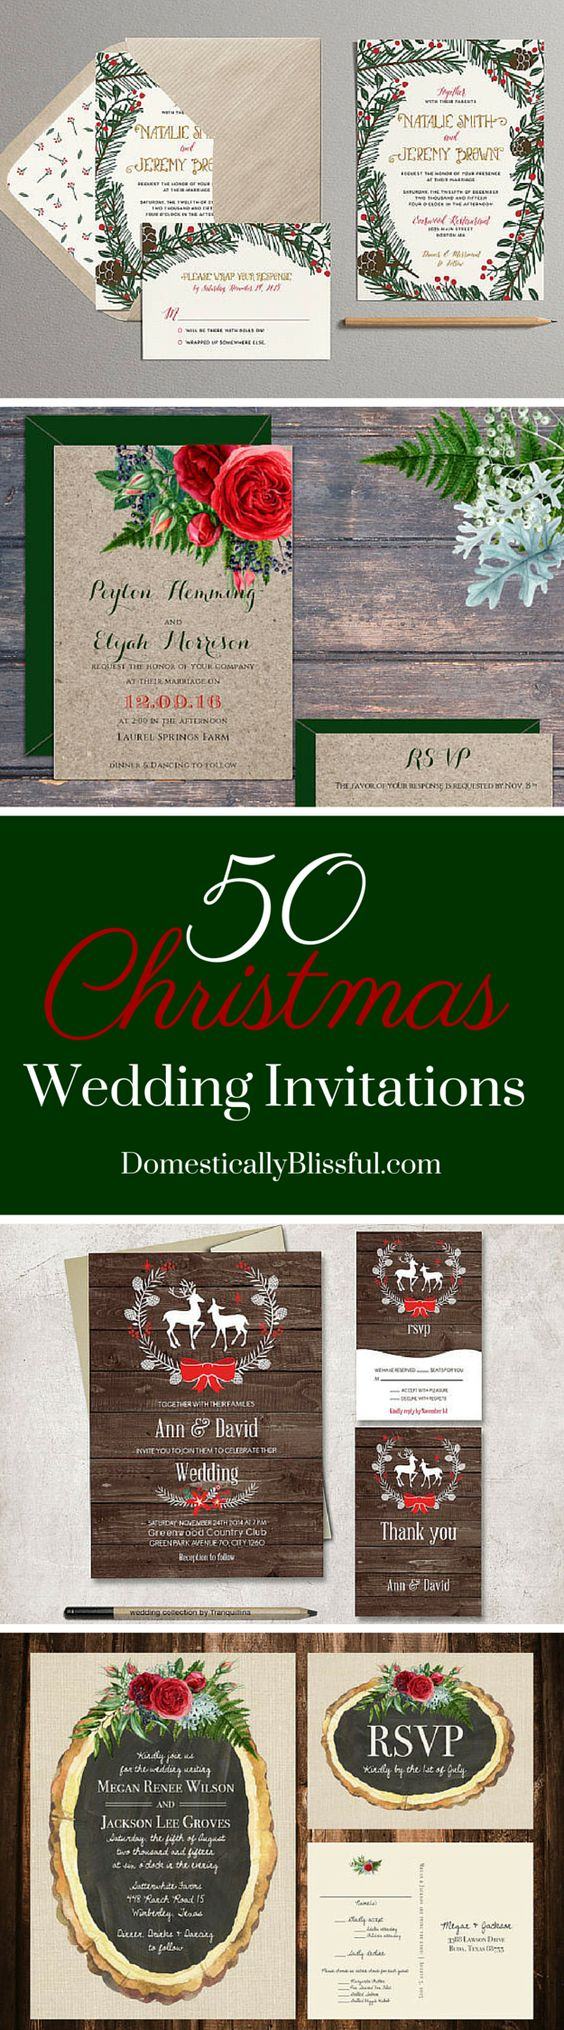 50 Christmas Wedding Invitations curated by Domestically Blissful